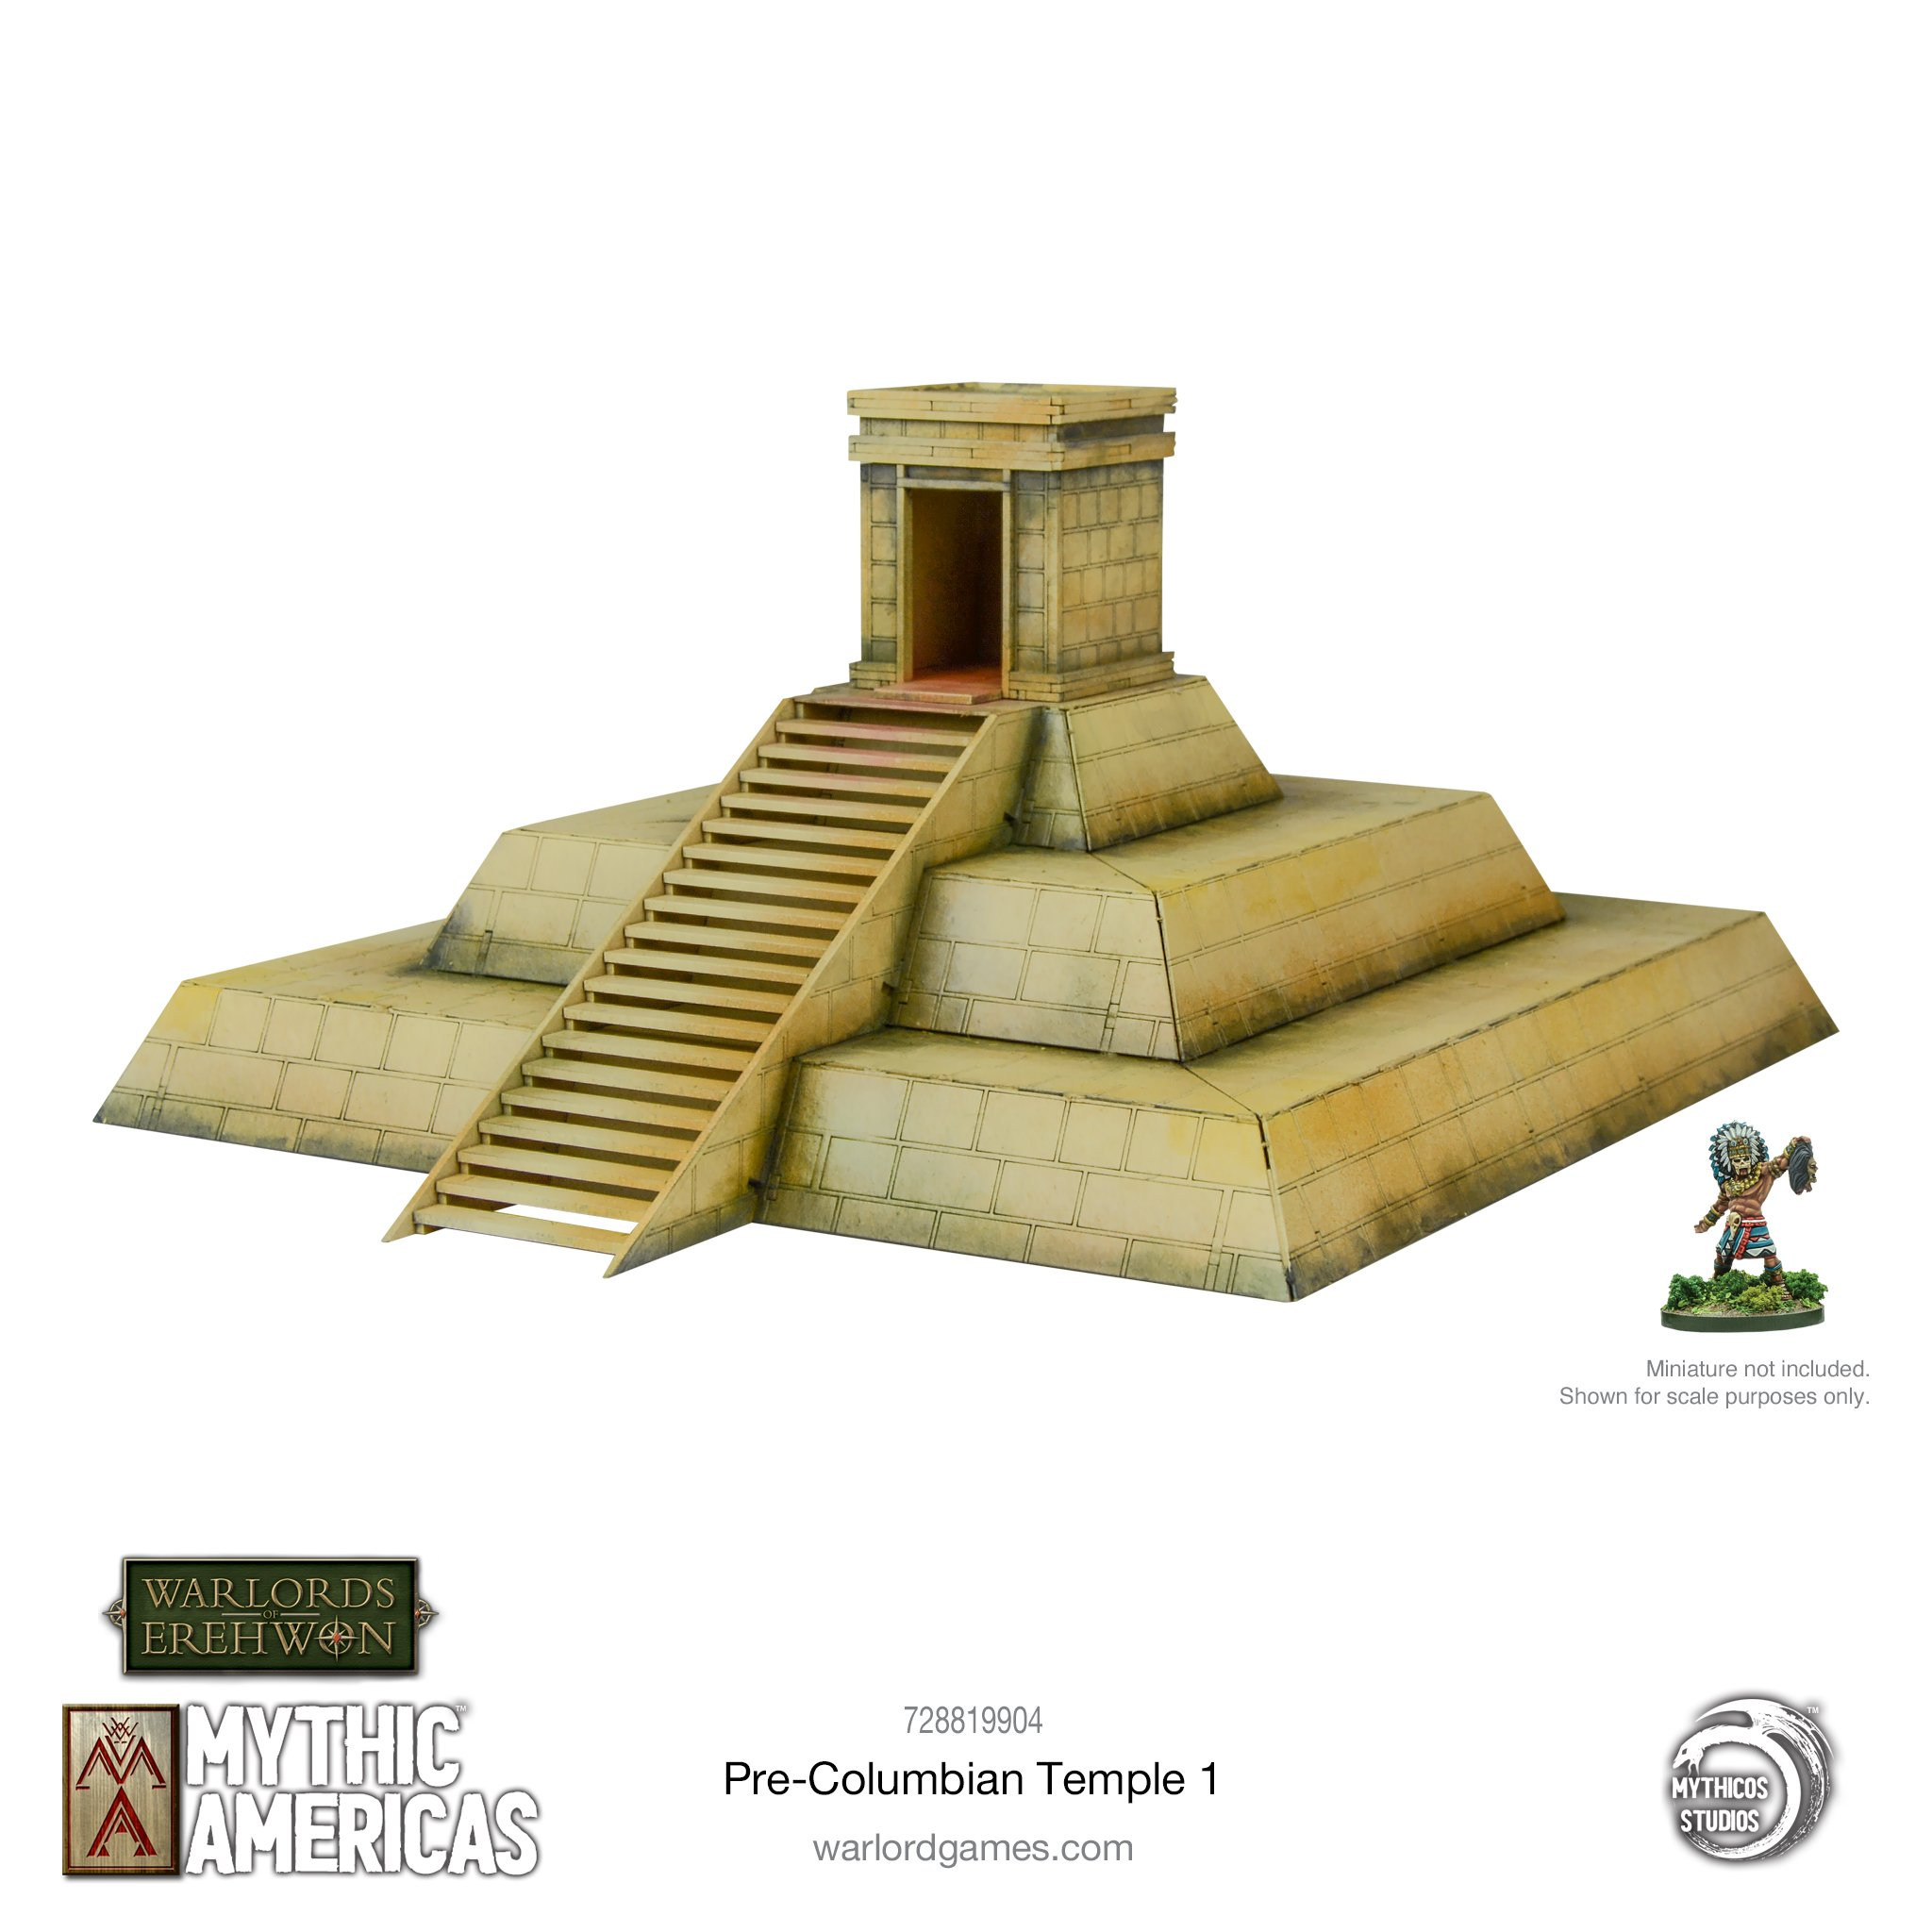 Pre-Columbian Temple #1 - Mythic Americas